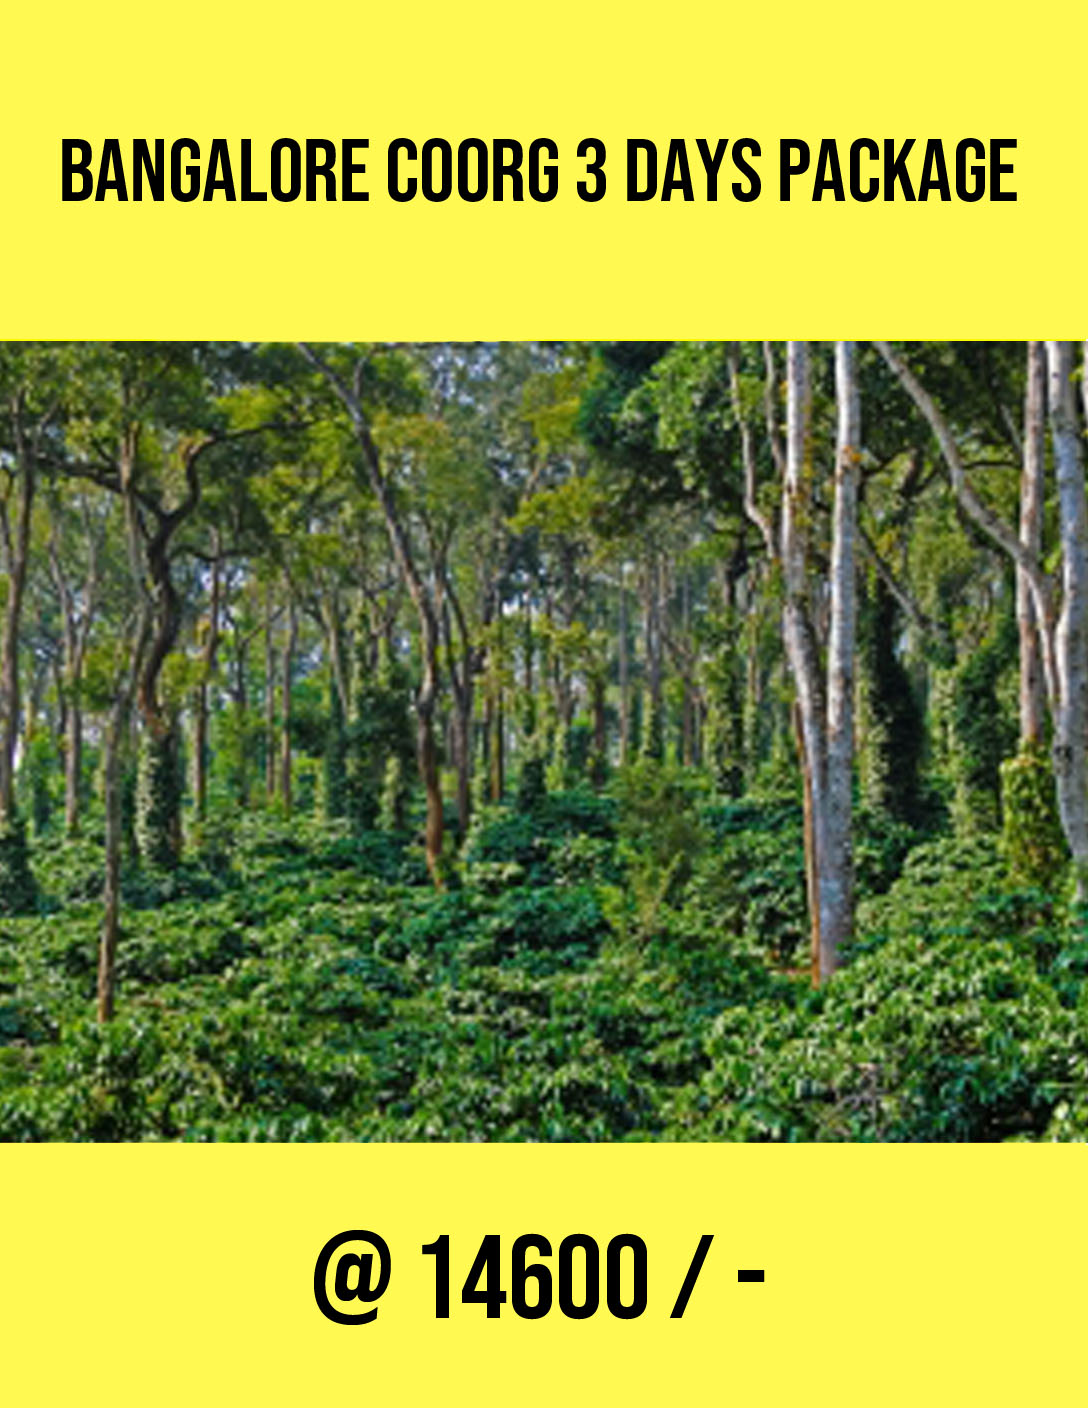 bangalore-coorg-3-days-package